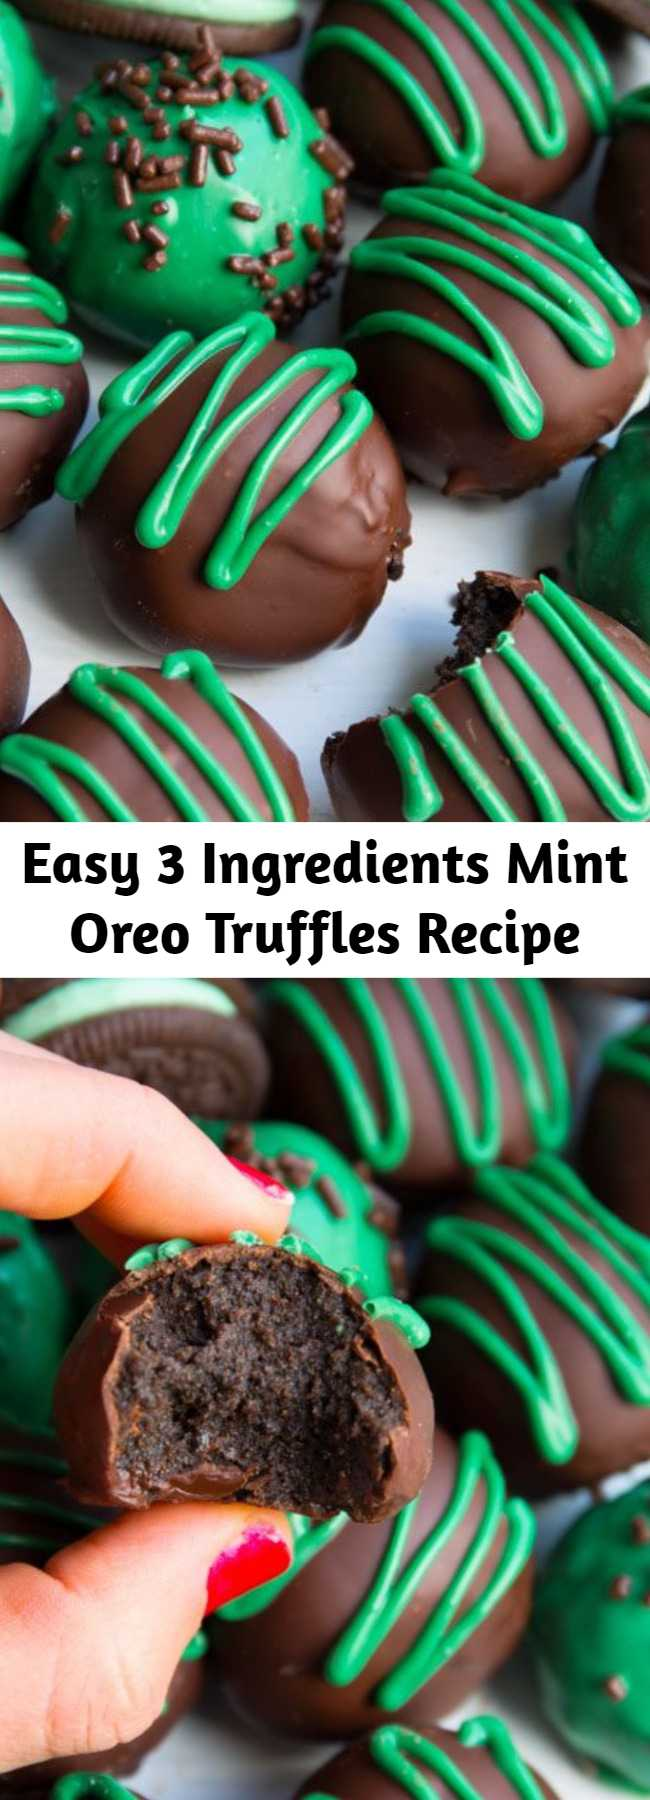 Easy 3 Ingredients Mint Oreo Truffles Recipe - Only 3 ingredients needed to make these mint chocolate truffles. They taste like chocolate-covered Oreo cheesecakes!